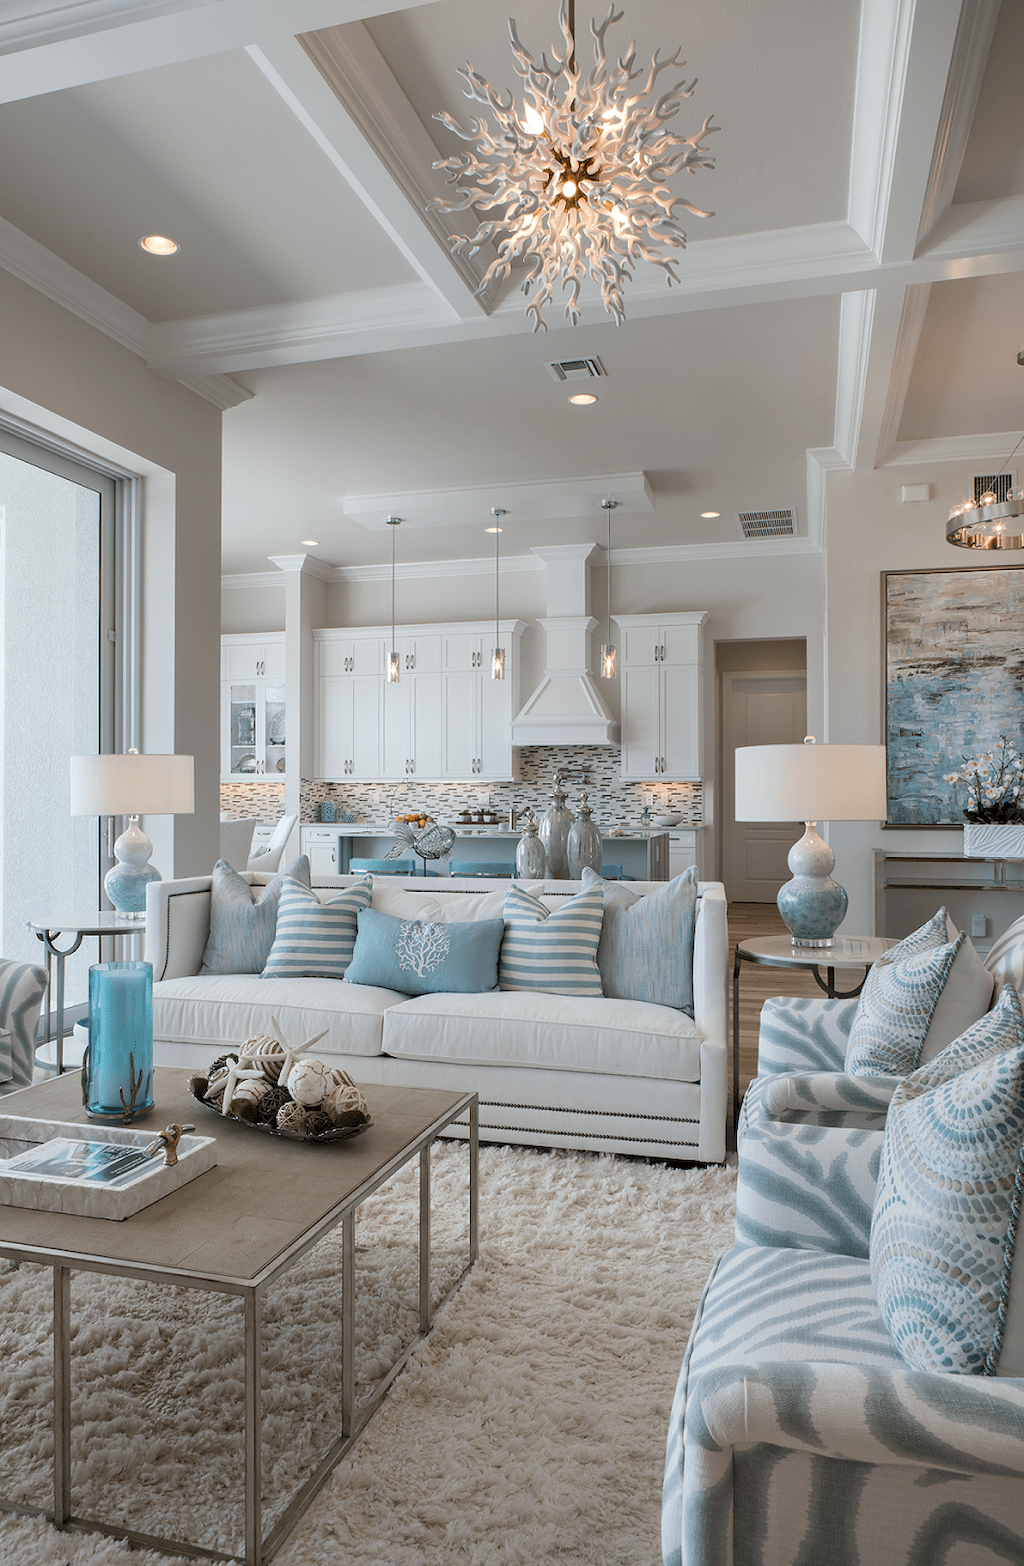 19 Cozy Coastal Living Room Decorating Ideas Setyouroom Com In 2020 Beach House Interior Design Beach Living Room Coastal Living Room #small #coastal #living #room